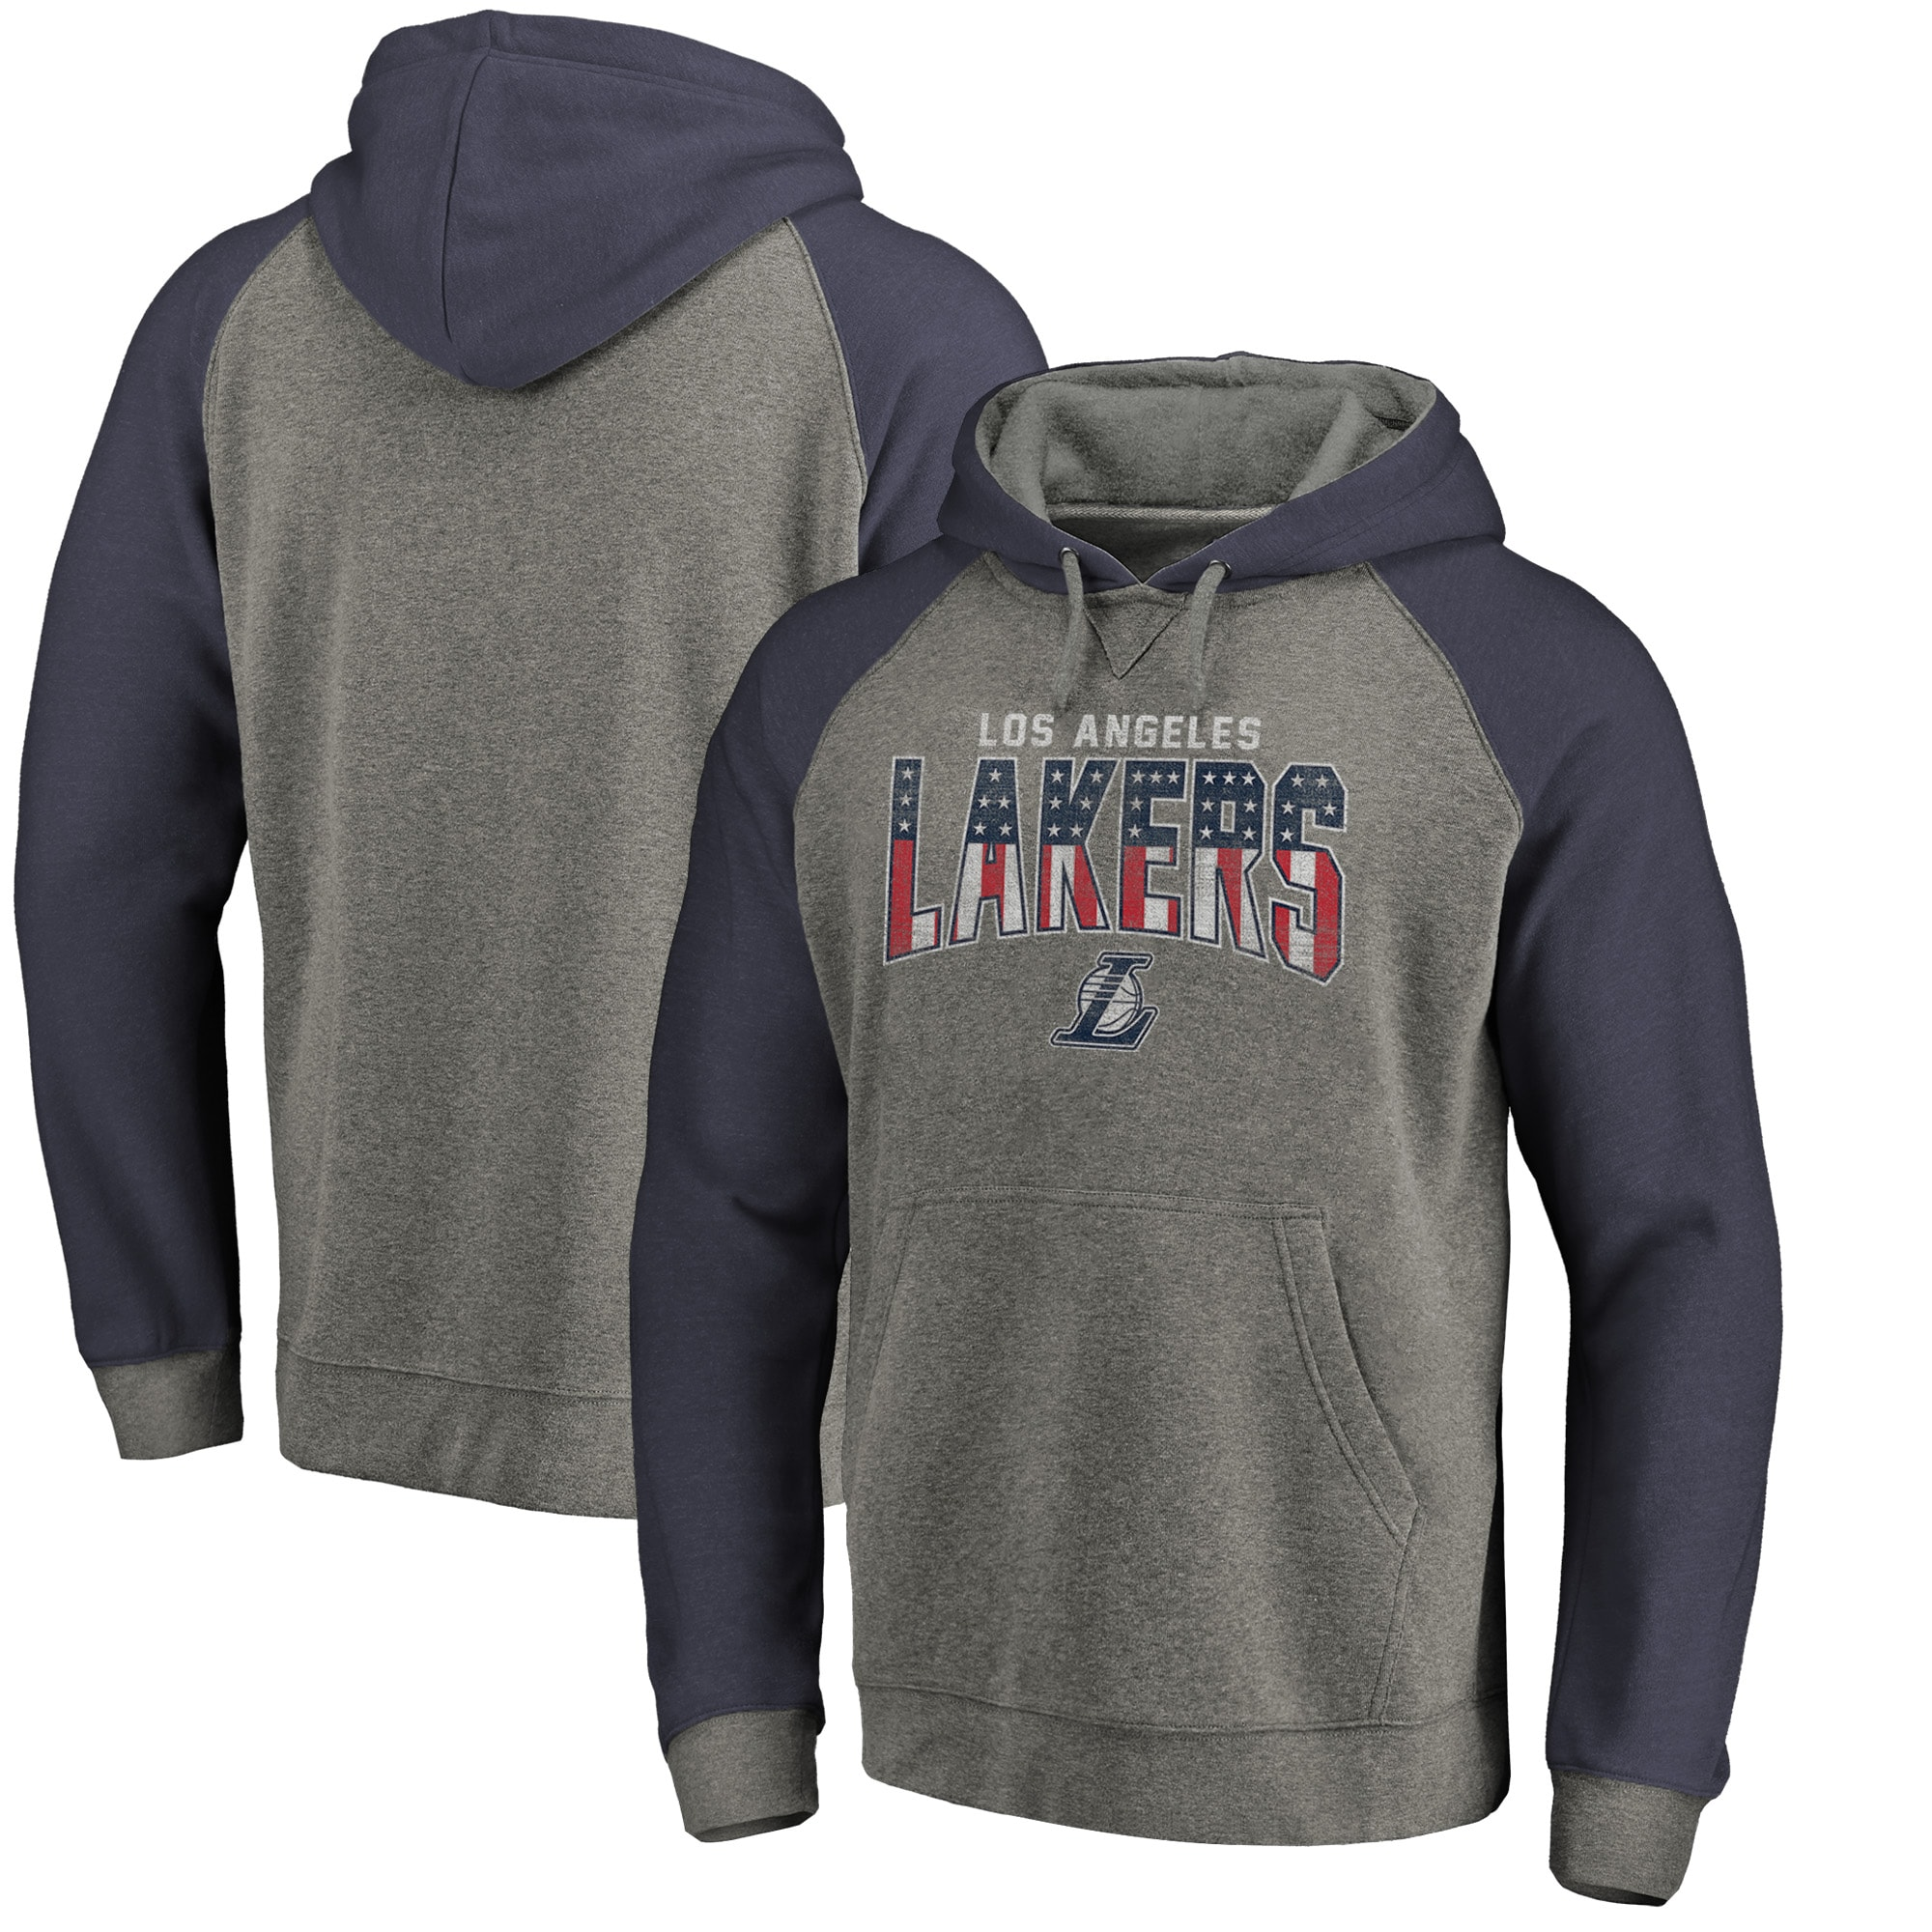 Los Angeles Lakers Fanatics Branded Freedom Tri-Blend Pullover Hoodie - Heathered Gray